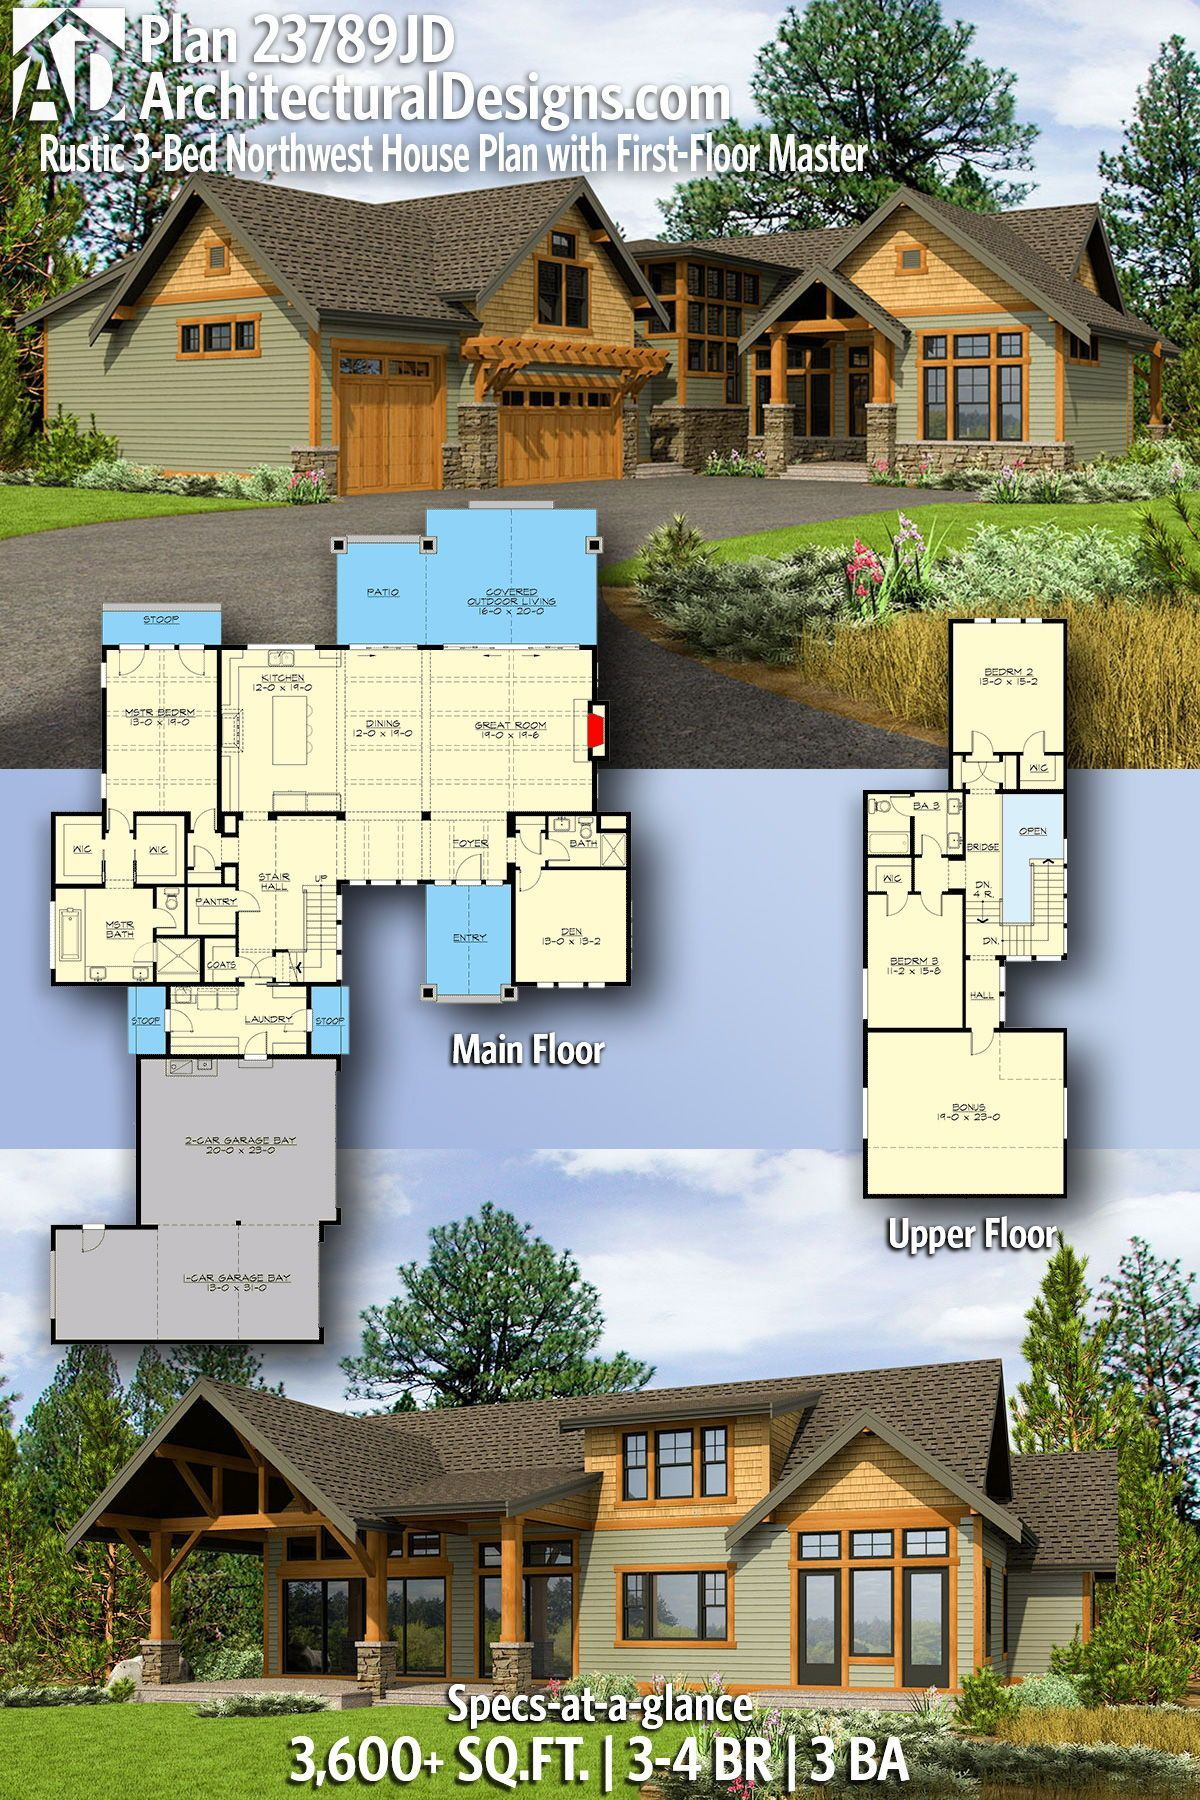 21 Lovely Home Plans Craftsman Mountain To Get Relax Dream House Plans House Plans Mountain House Plans